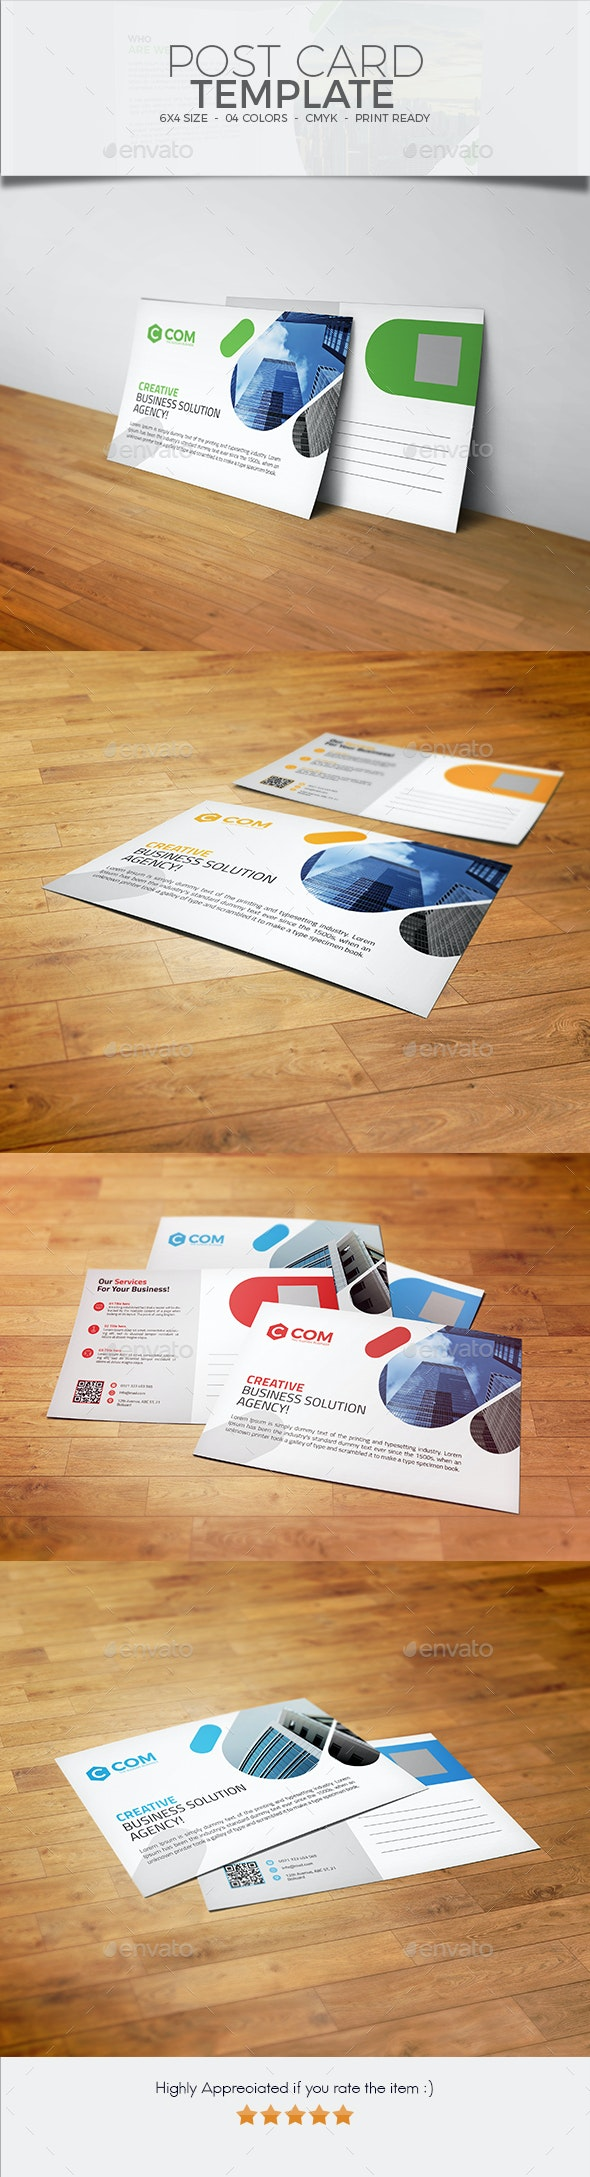 Post Card Design 01 - Cards & Invites Print Templates